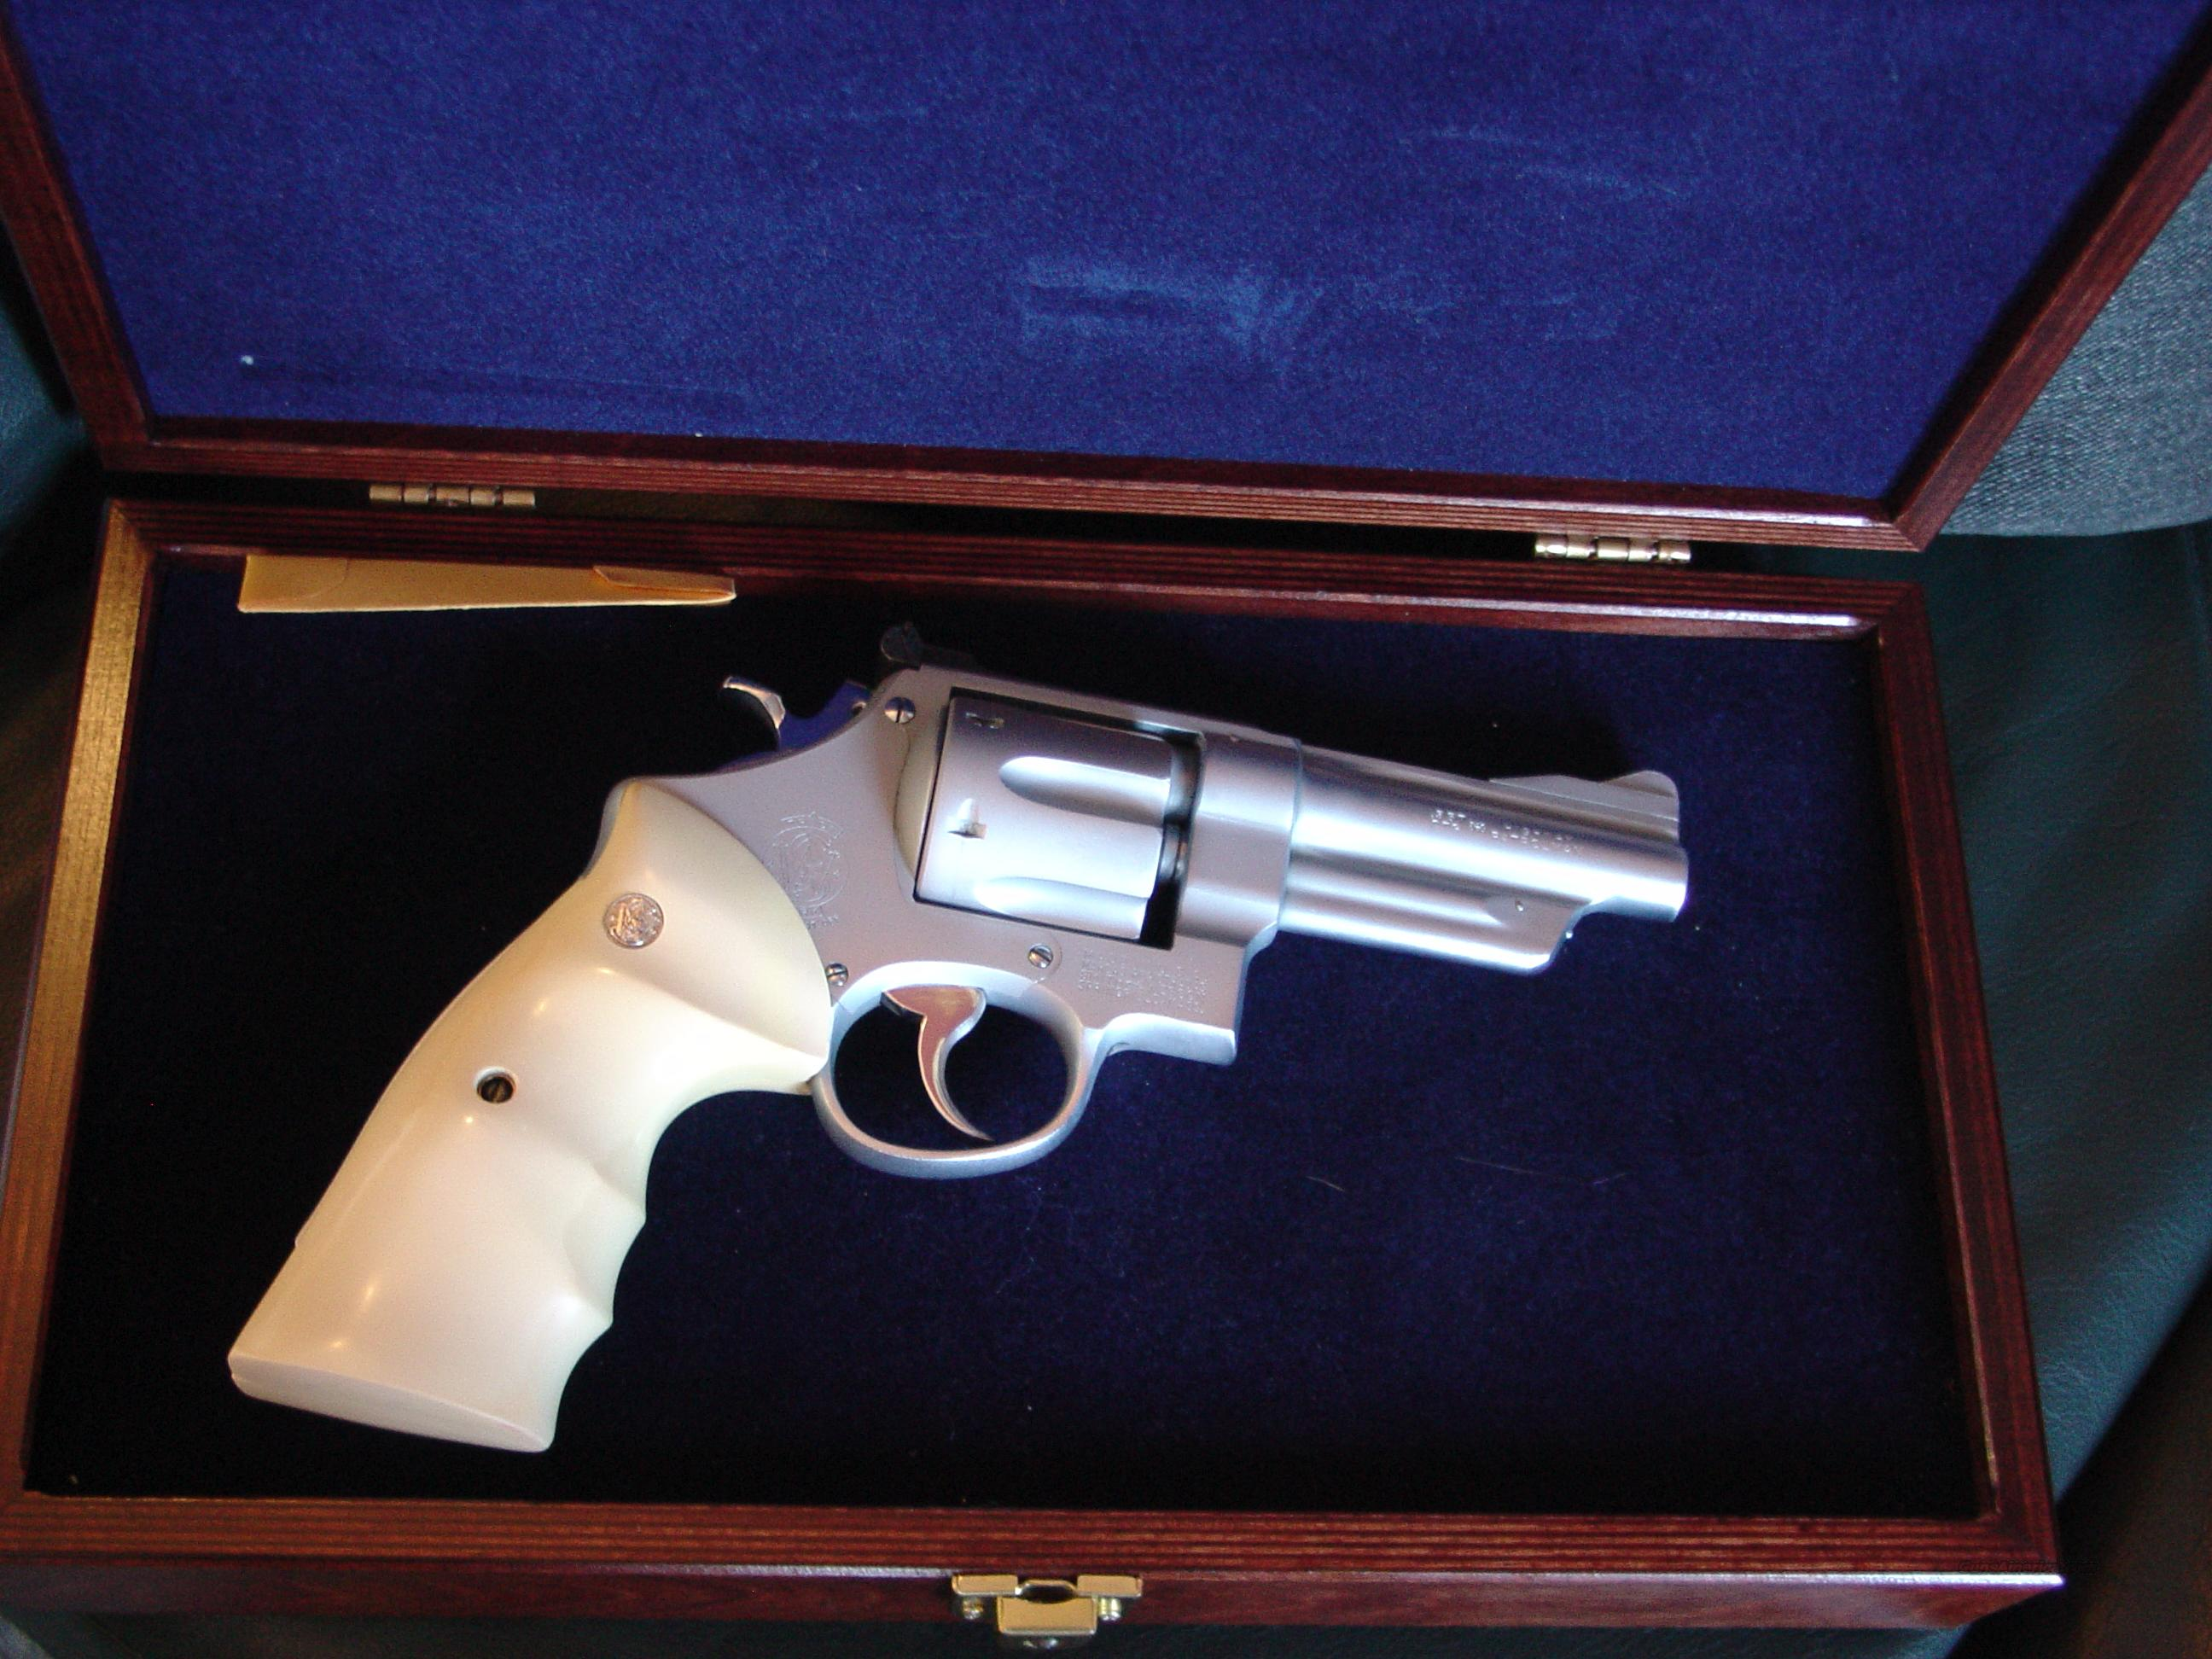 "Smith & Wesson model 28,Highway Patrolman,1956, 5 screws,pinned 4"" barrel,re-finished in a matt nickel look,with bright nickel accents,S&W wood pres case,custom faux ivory grips-very sharp 357 Mag revolver  Guns > Pistols > Smith & Wesson Revolvers > Full Frame Revolver"